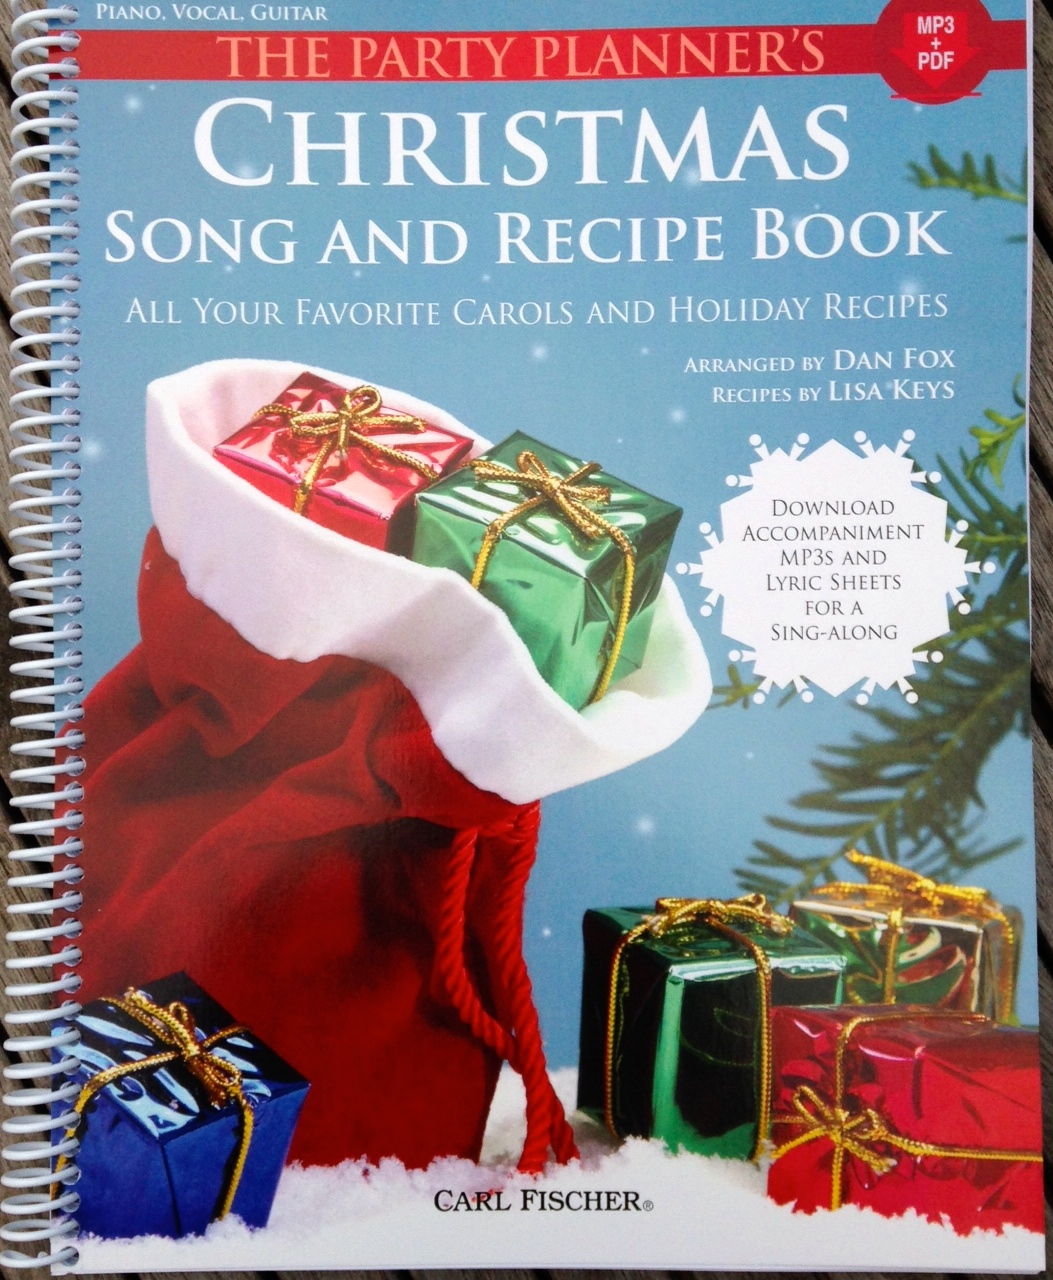 my recipes in the book Christmas Song and Recipe book